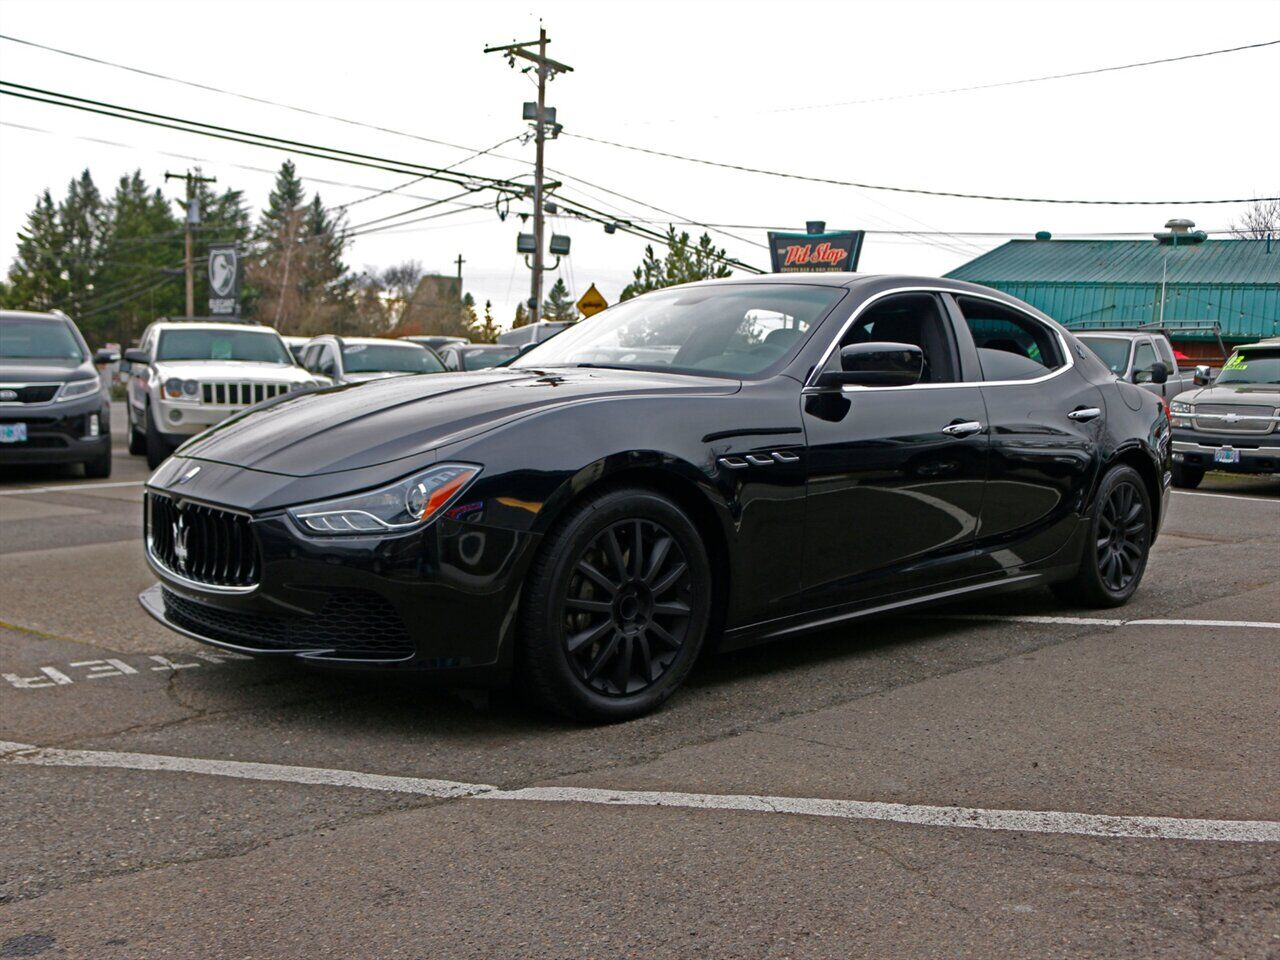 2014 Maserati Ghibli Super clean only 32k miles turbo Beaverton OR